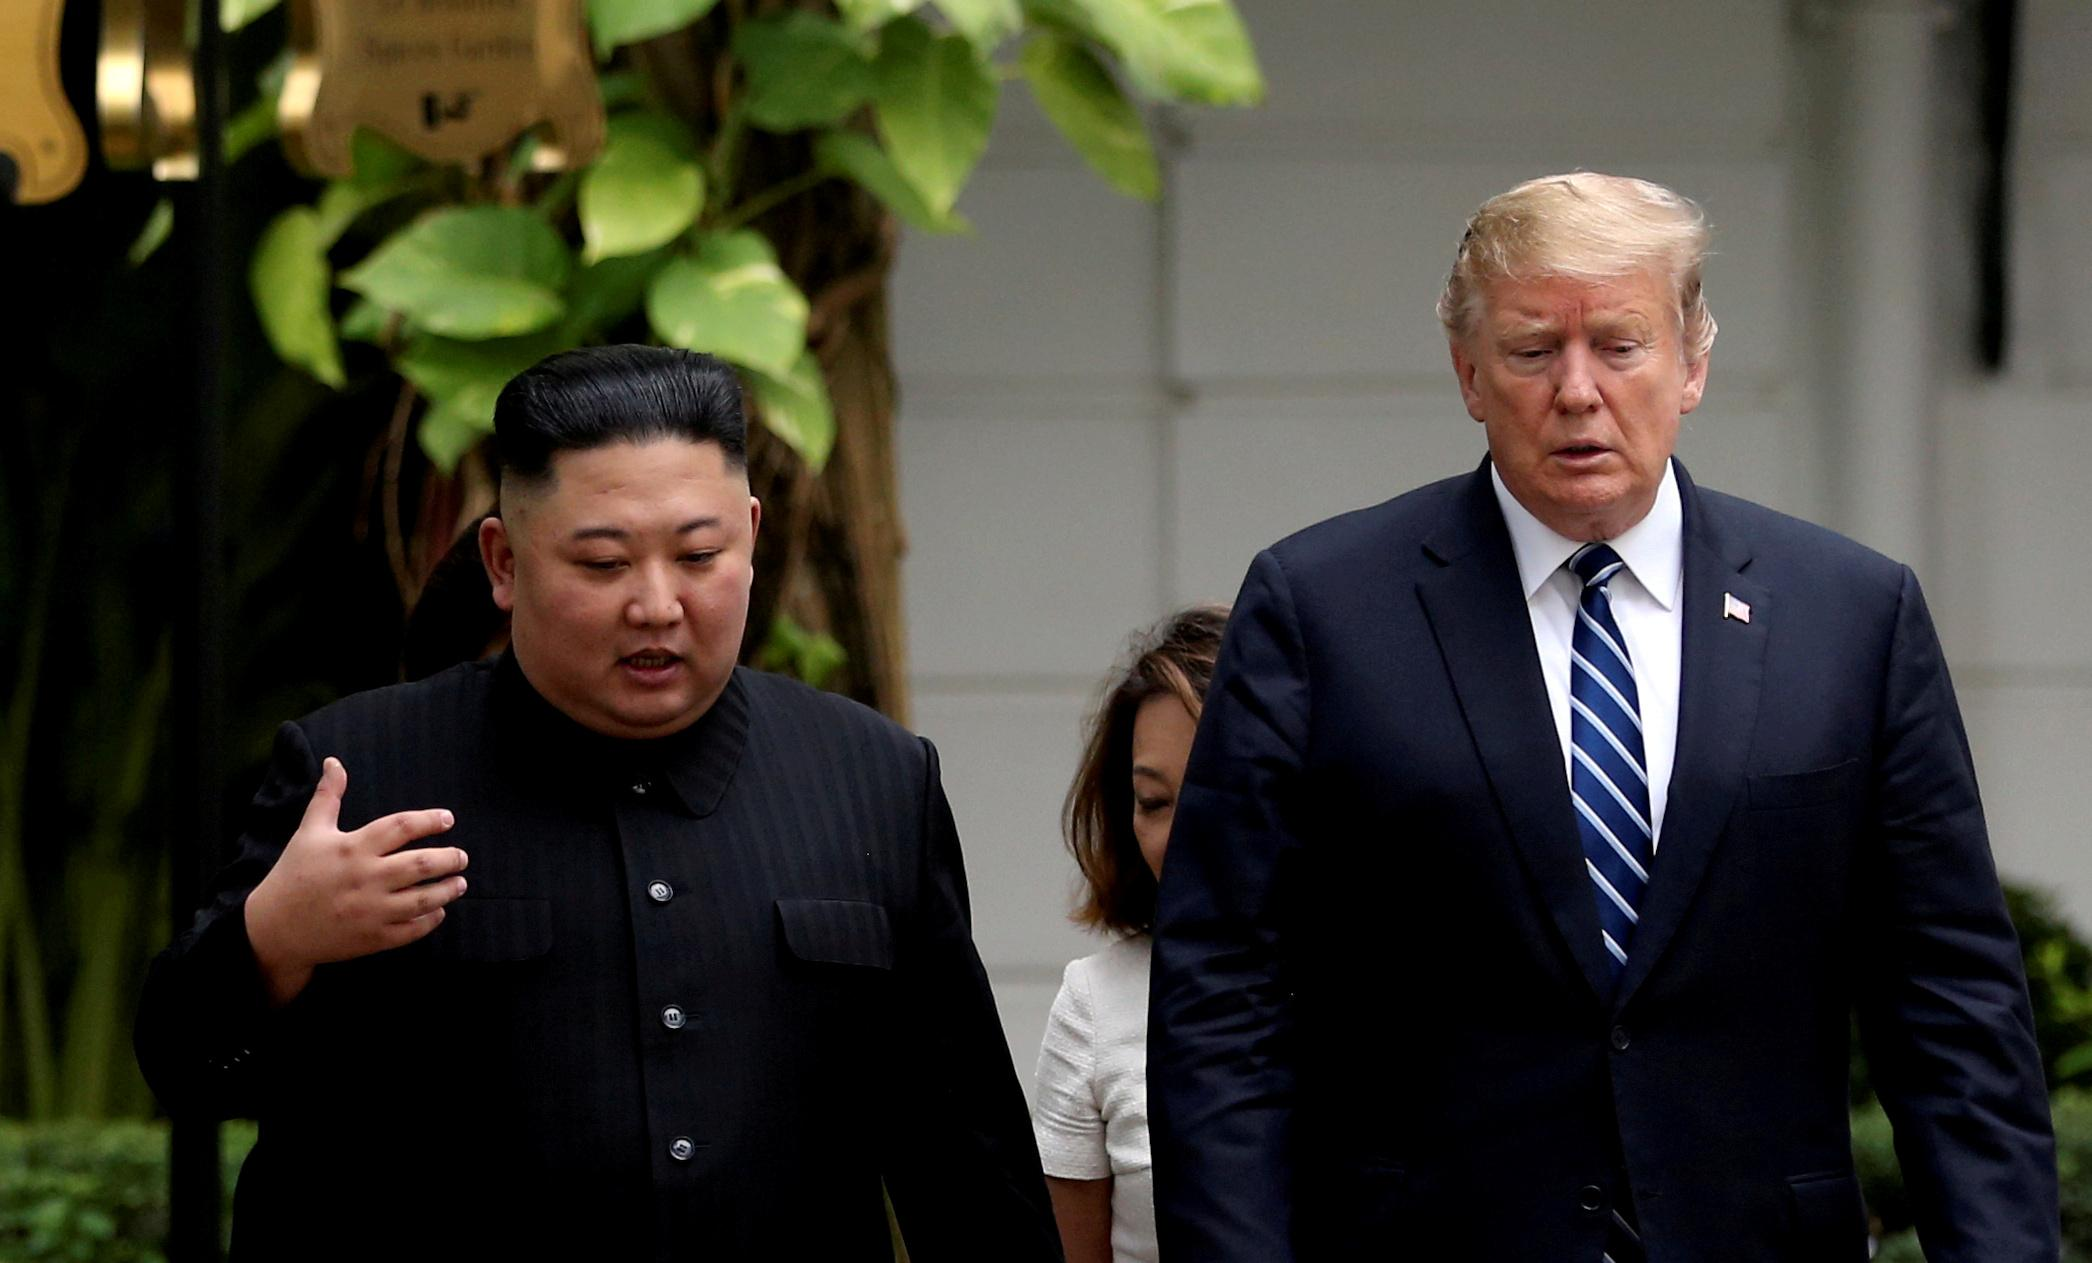 Trump willing to meet again with North Korean leader